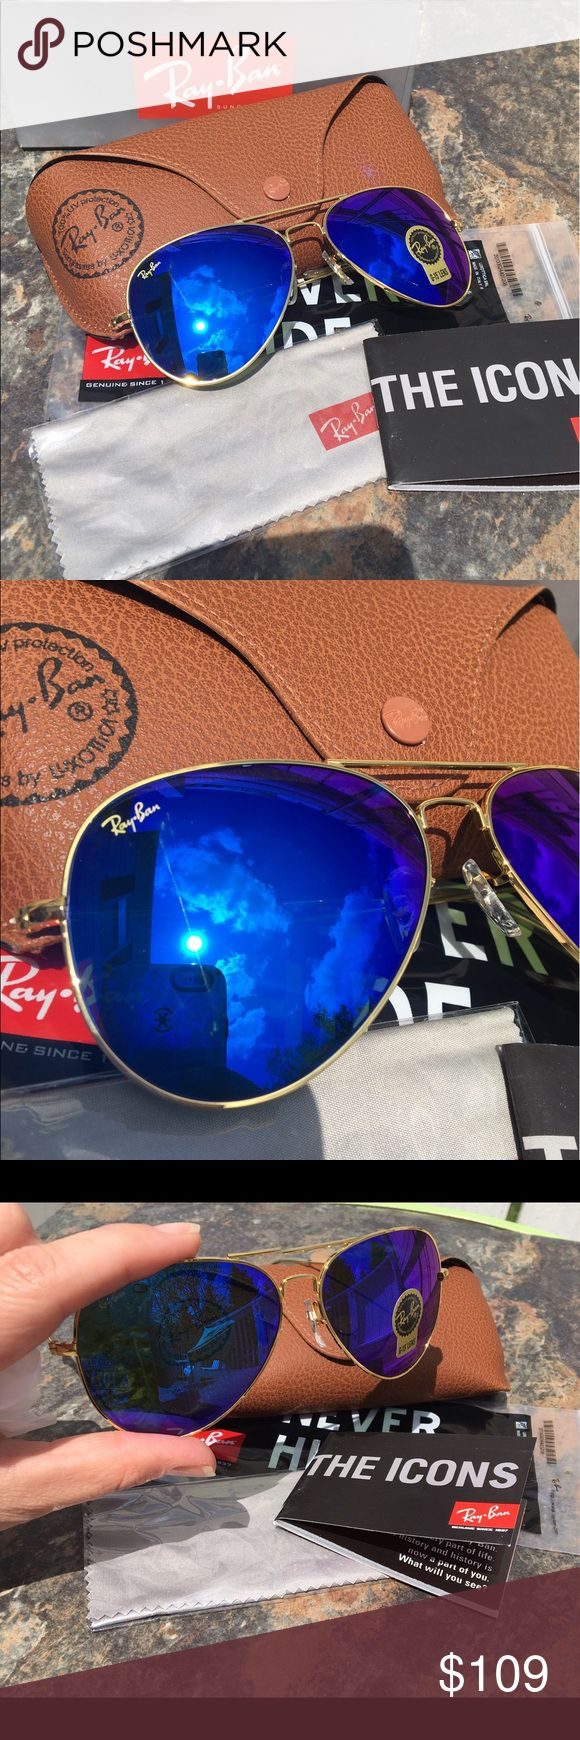 Ray Ban Sunglasses RB3025 Blue / Purple Authentic Ray-Ban sunglasses 😎. RB3025. Blue / Purple mirror flash with gold frame. You will receive everything you see in photos. Please buy with confidence take a look at my reviews 👌🏼👍🏼. Made in Italy Ray-Ban Accessories Sunglasses